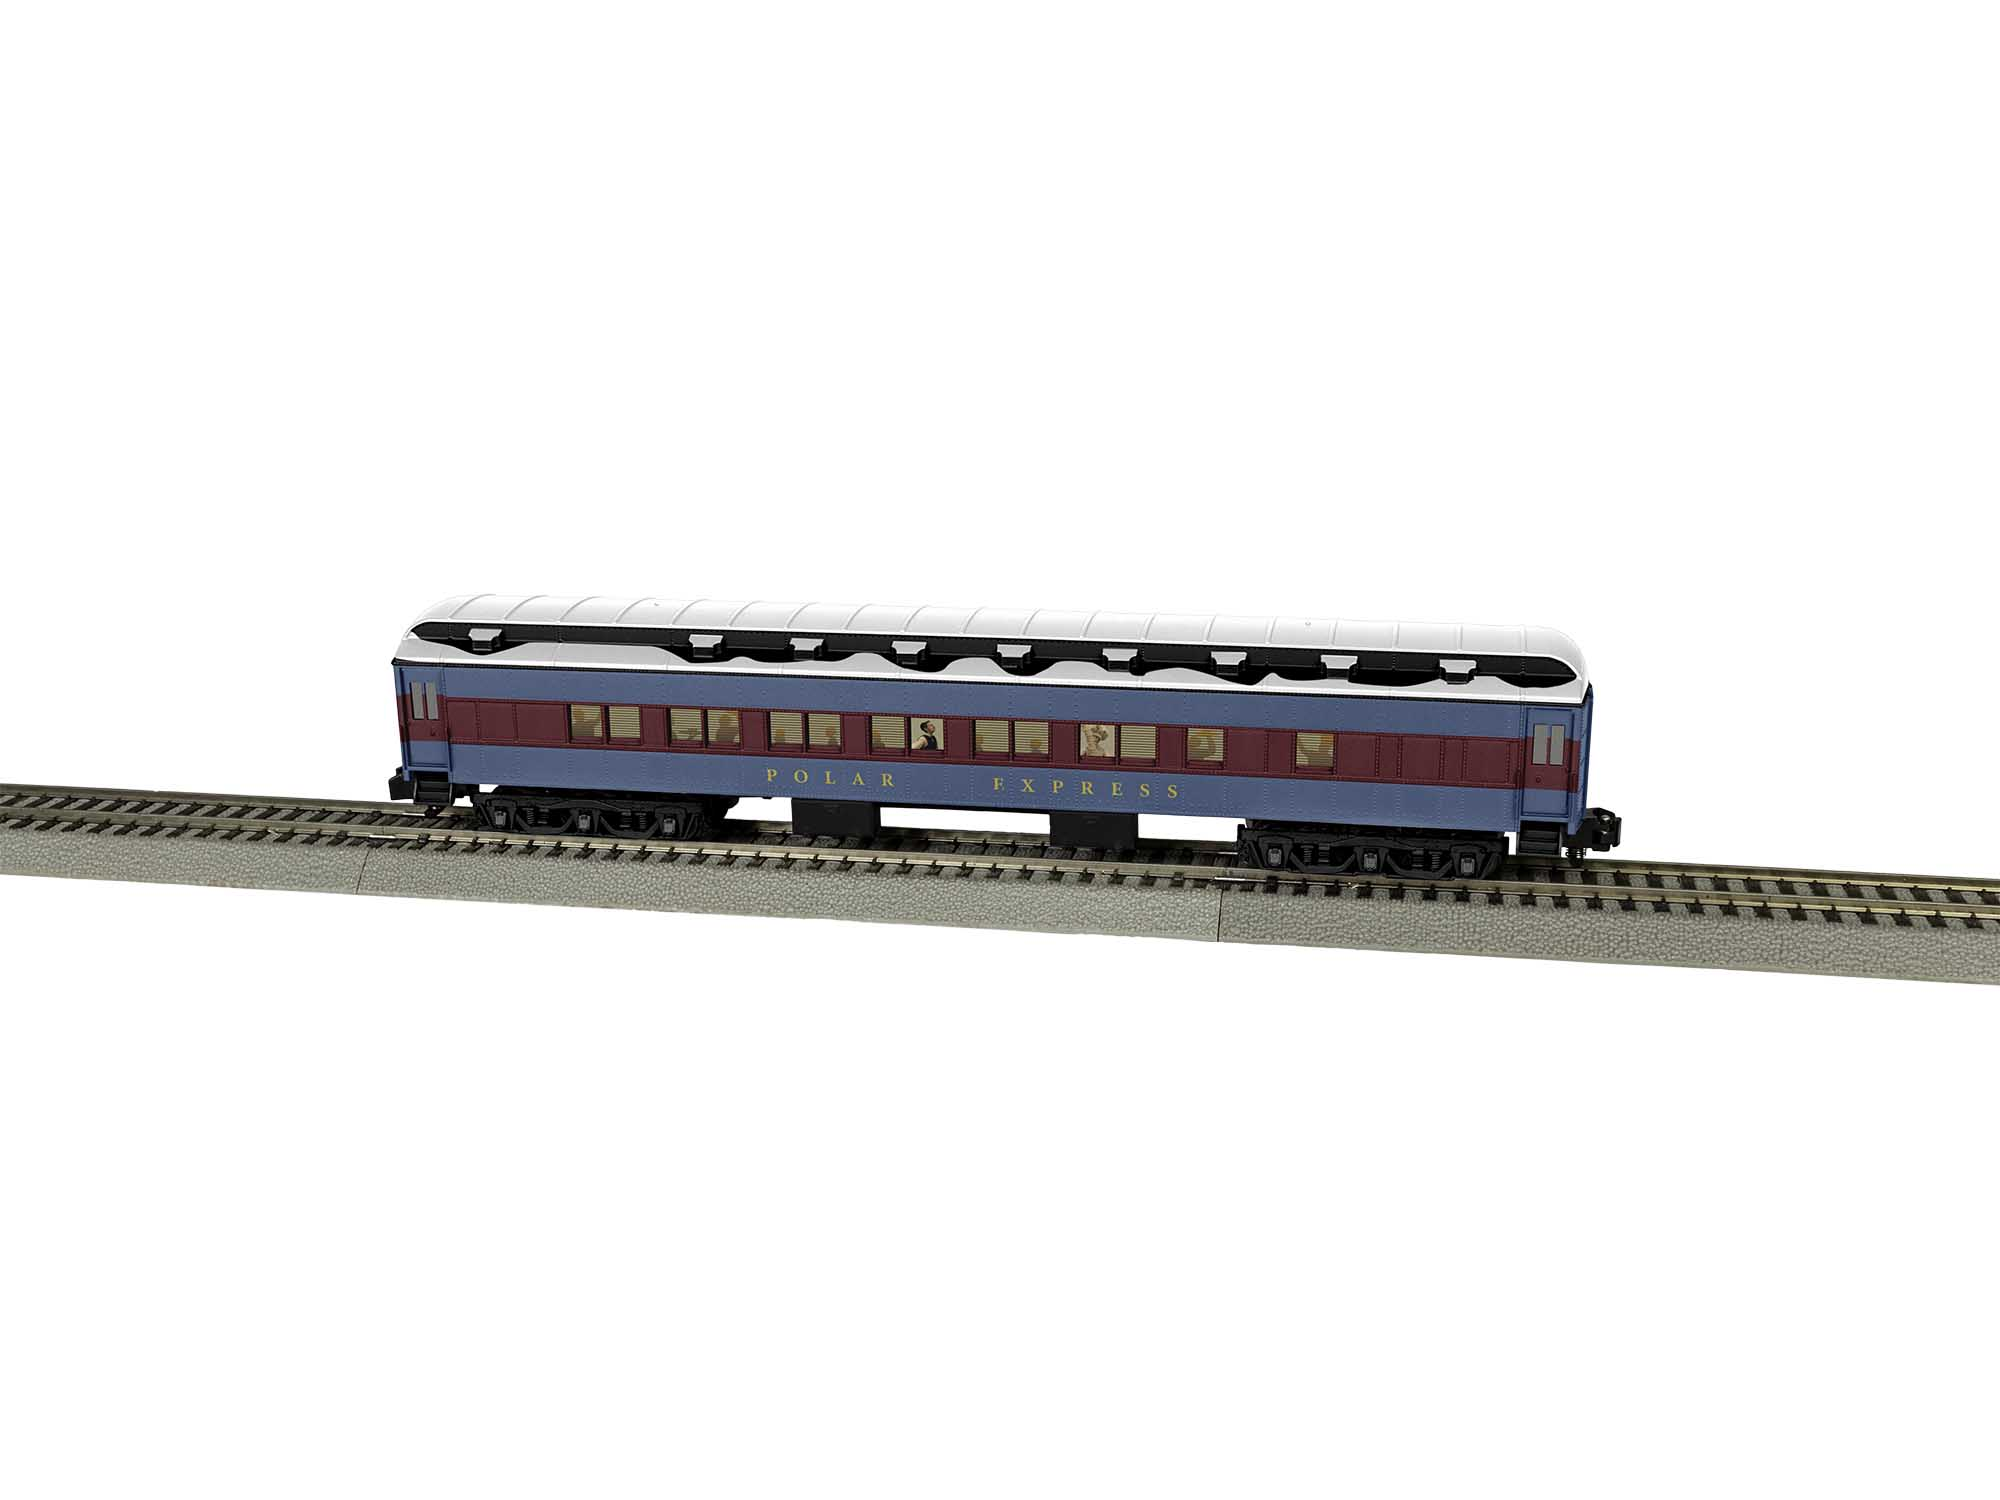 Lionel 2019440 S The Polar Express Hot Chocolate Car